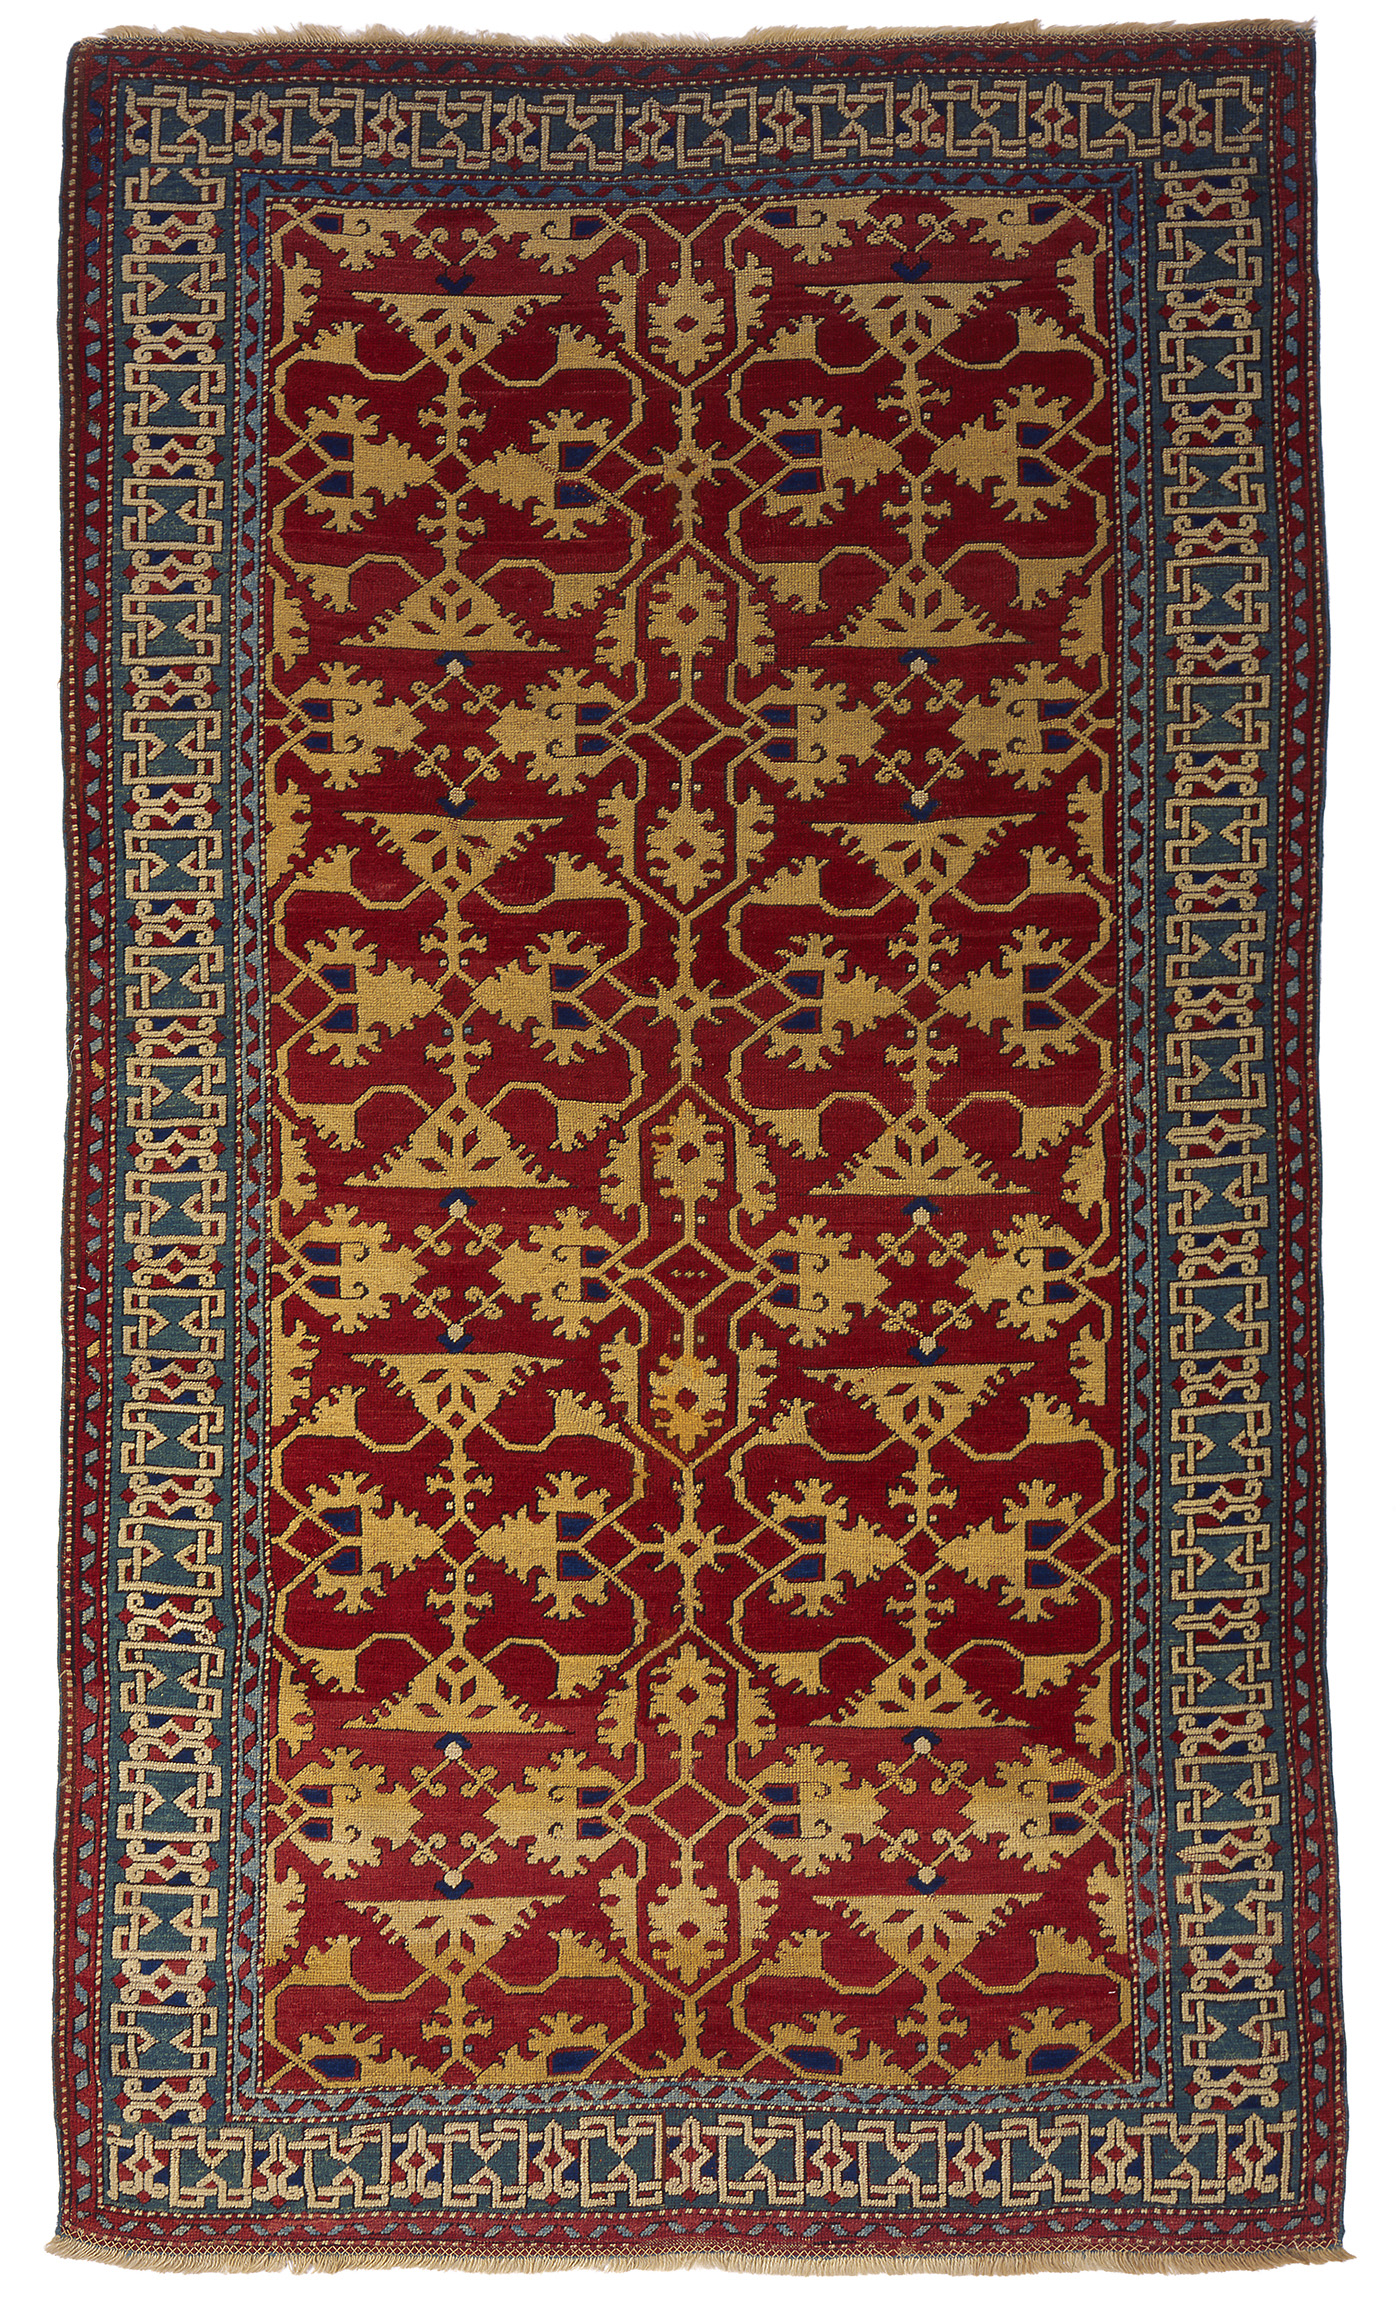 Lotto type of Ushak carpet, designed and woven in workshops of Western Anatolia, 16th century